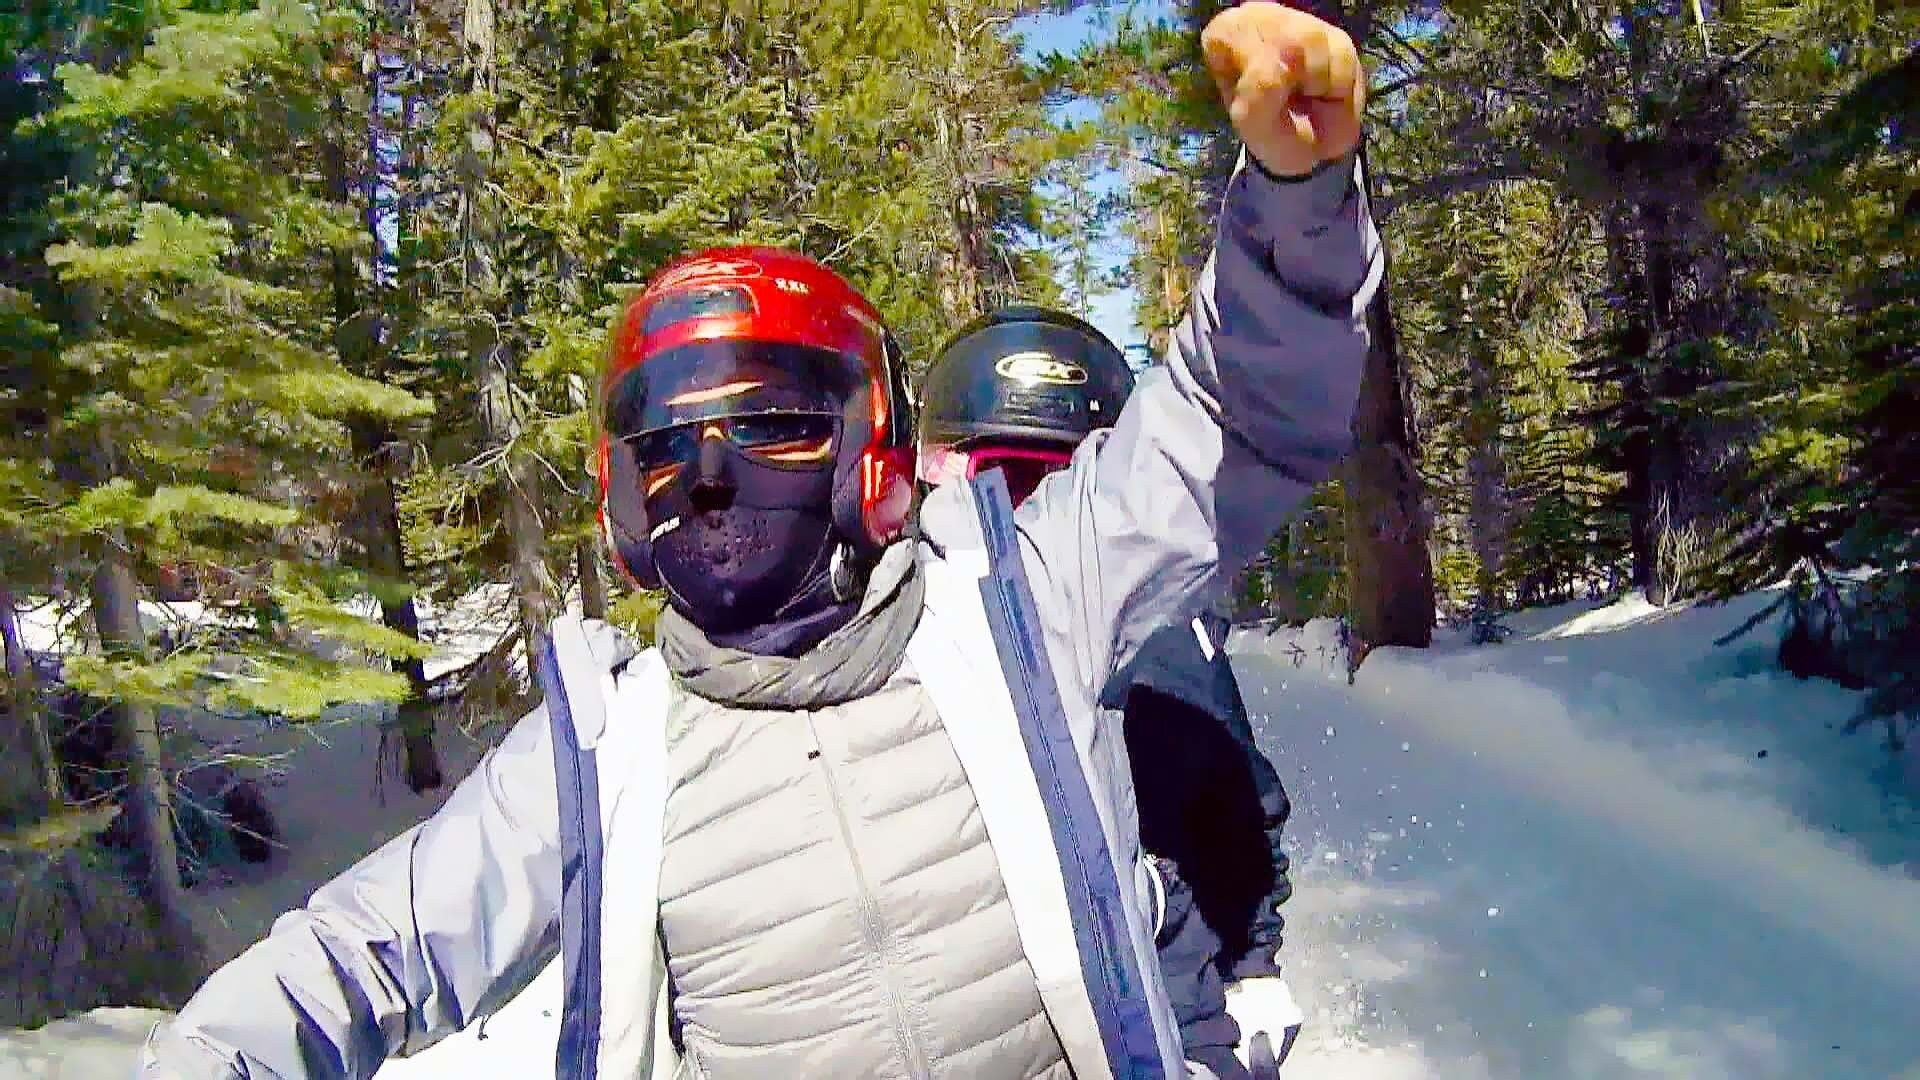 Adrenalina de Mammoth